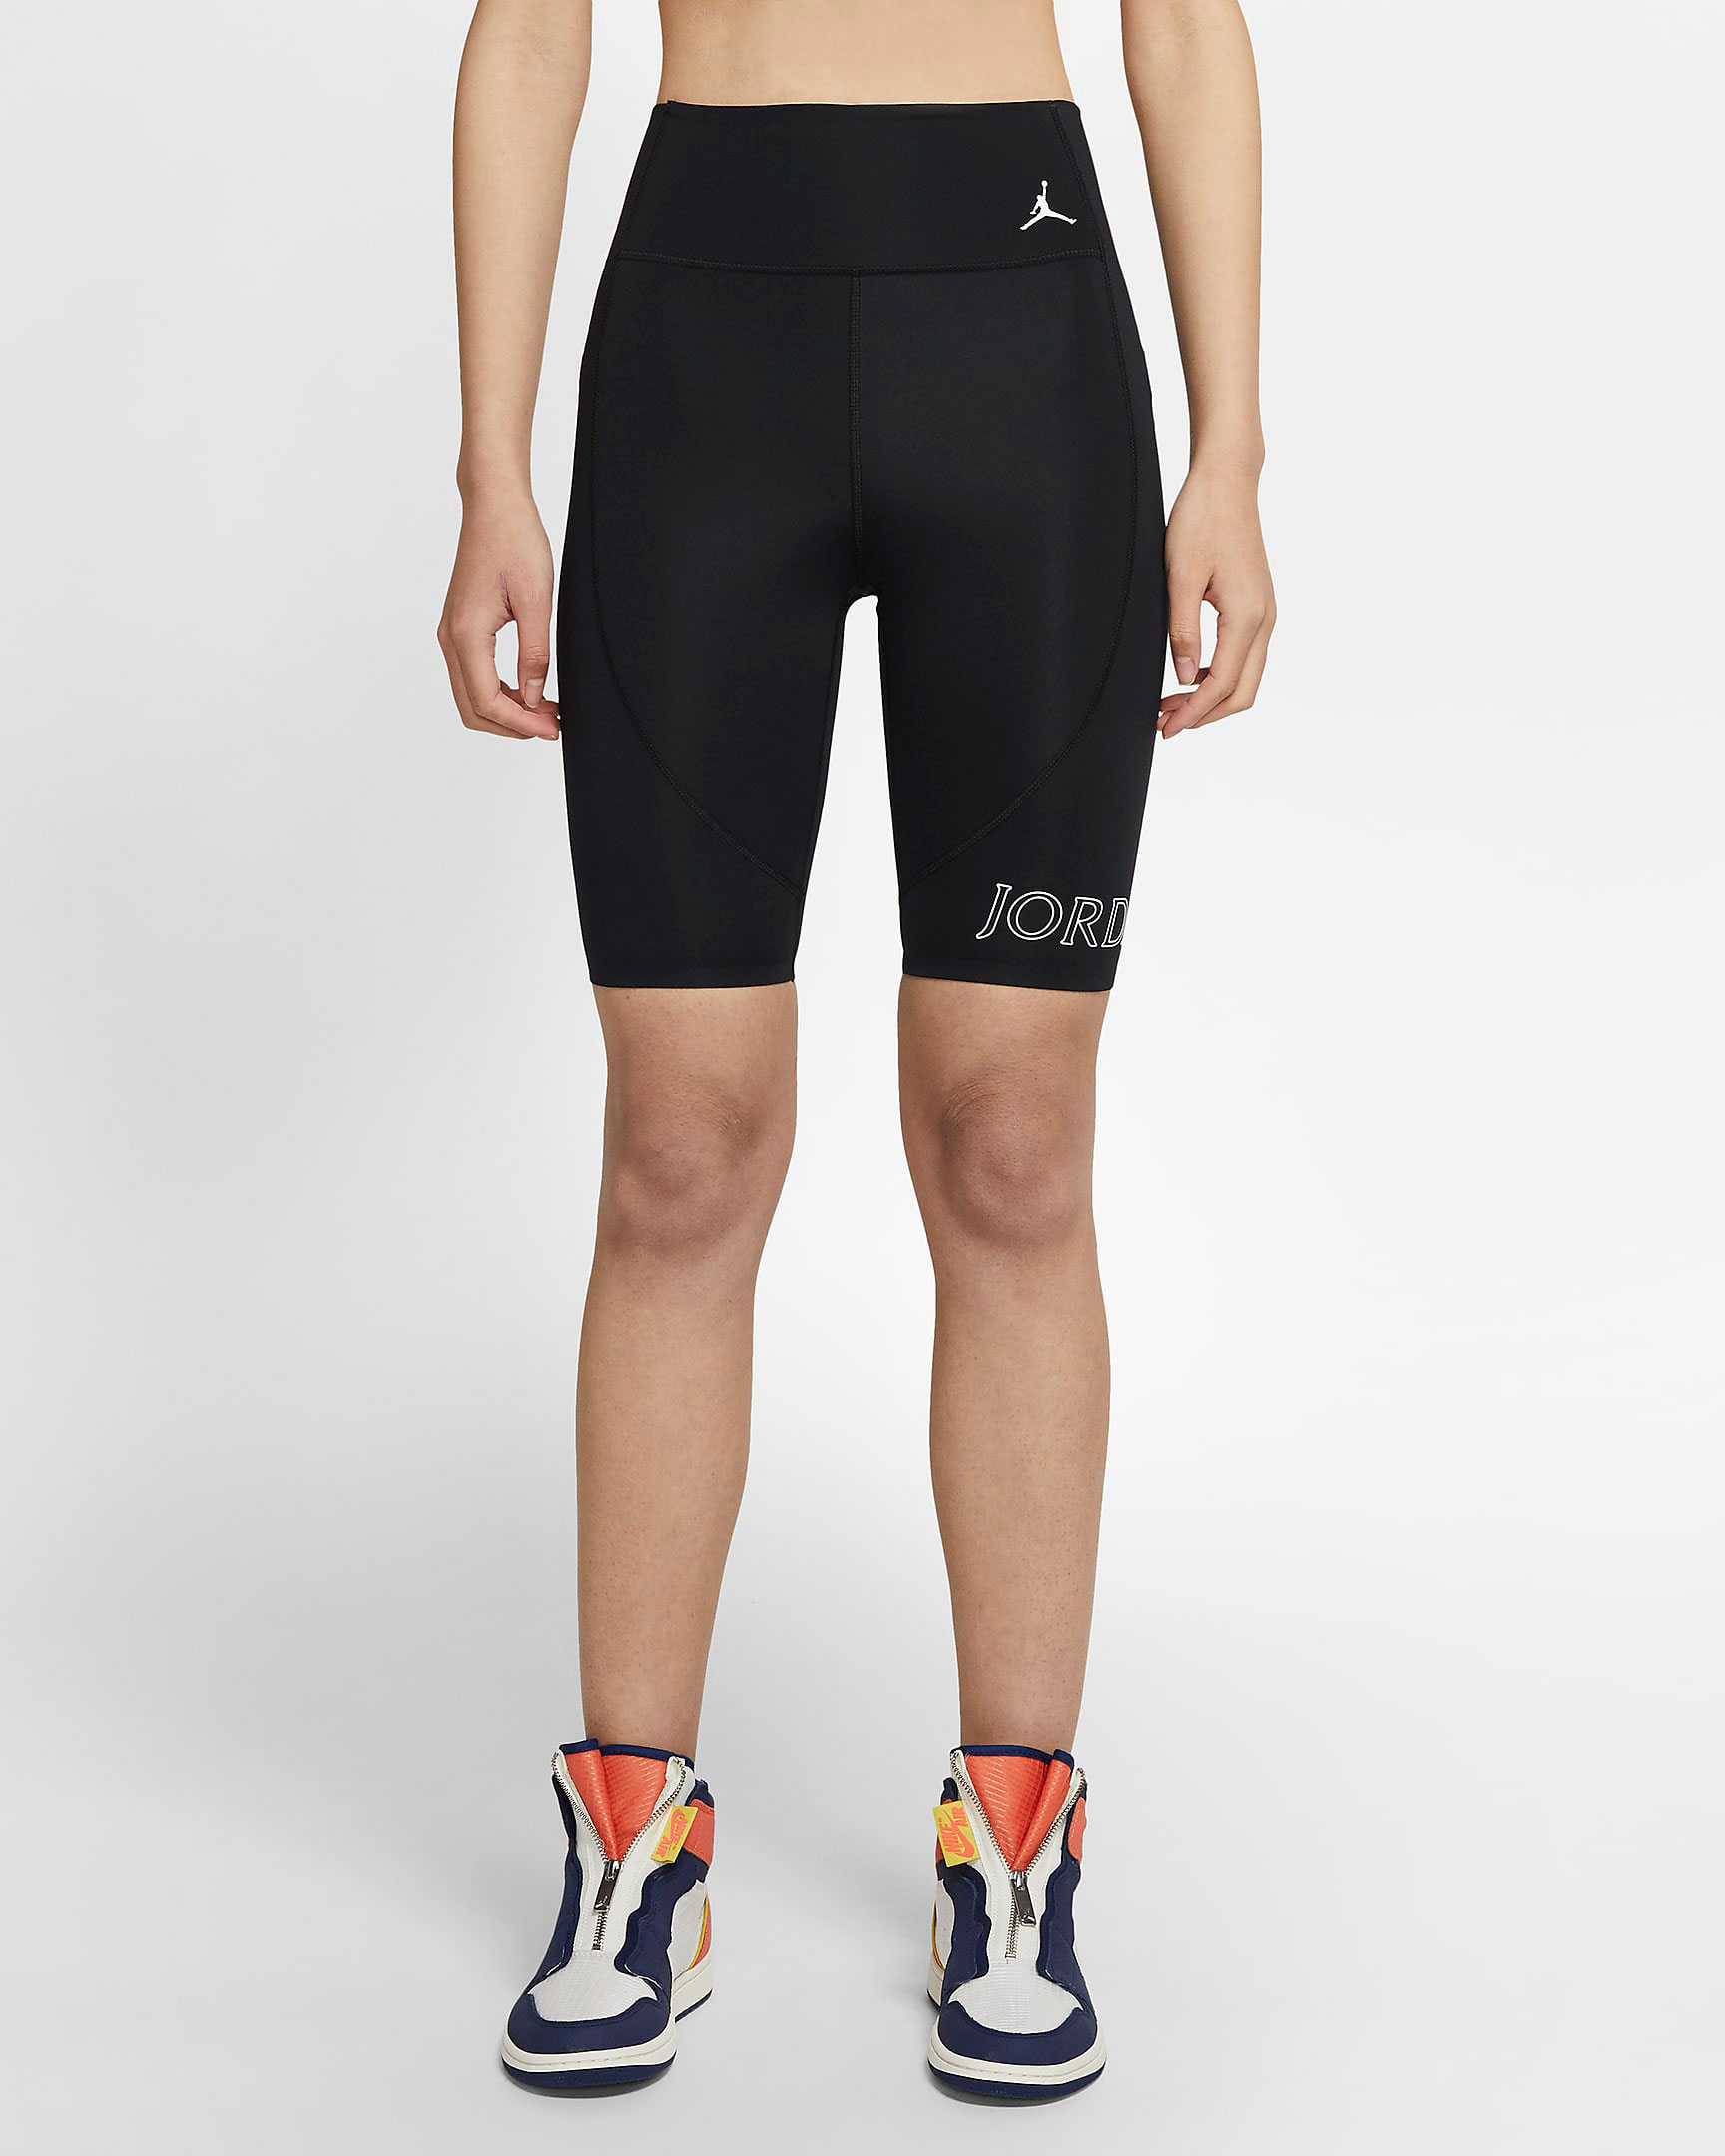 jordan-womens-utility-bike-shorts